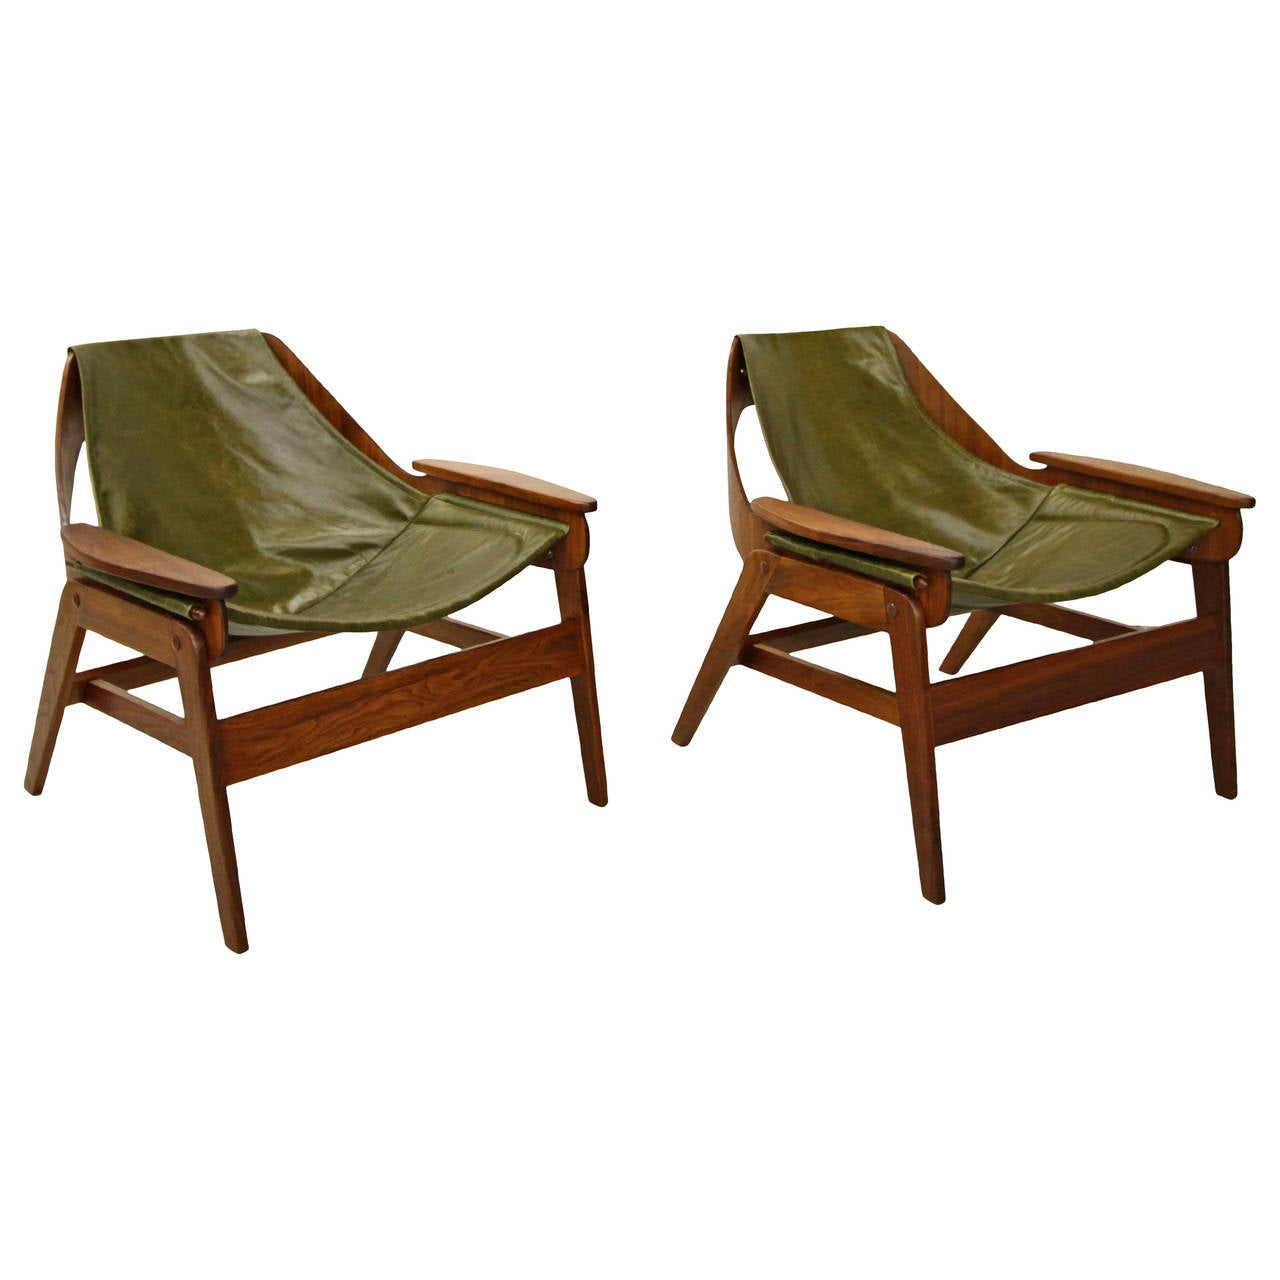 Leather sling chair - Pair Of Midcentury Walnut And Leather Sling Chairs By Jerry Johnson 1